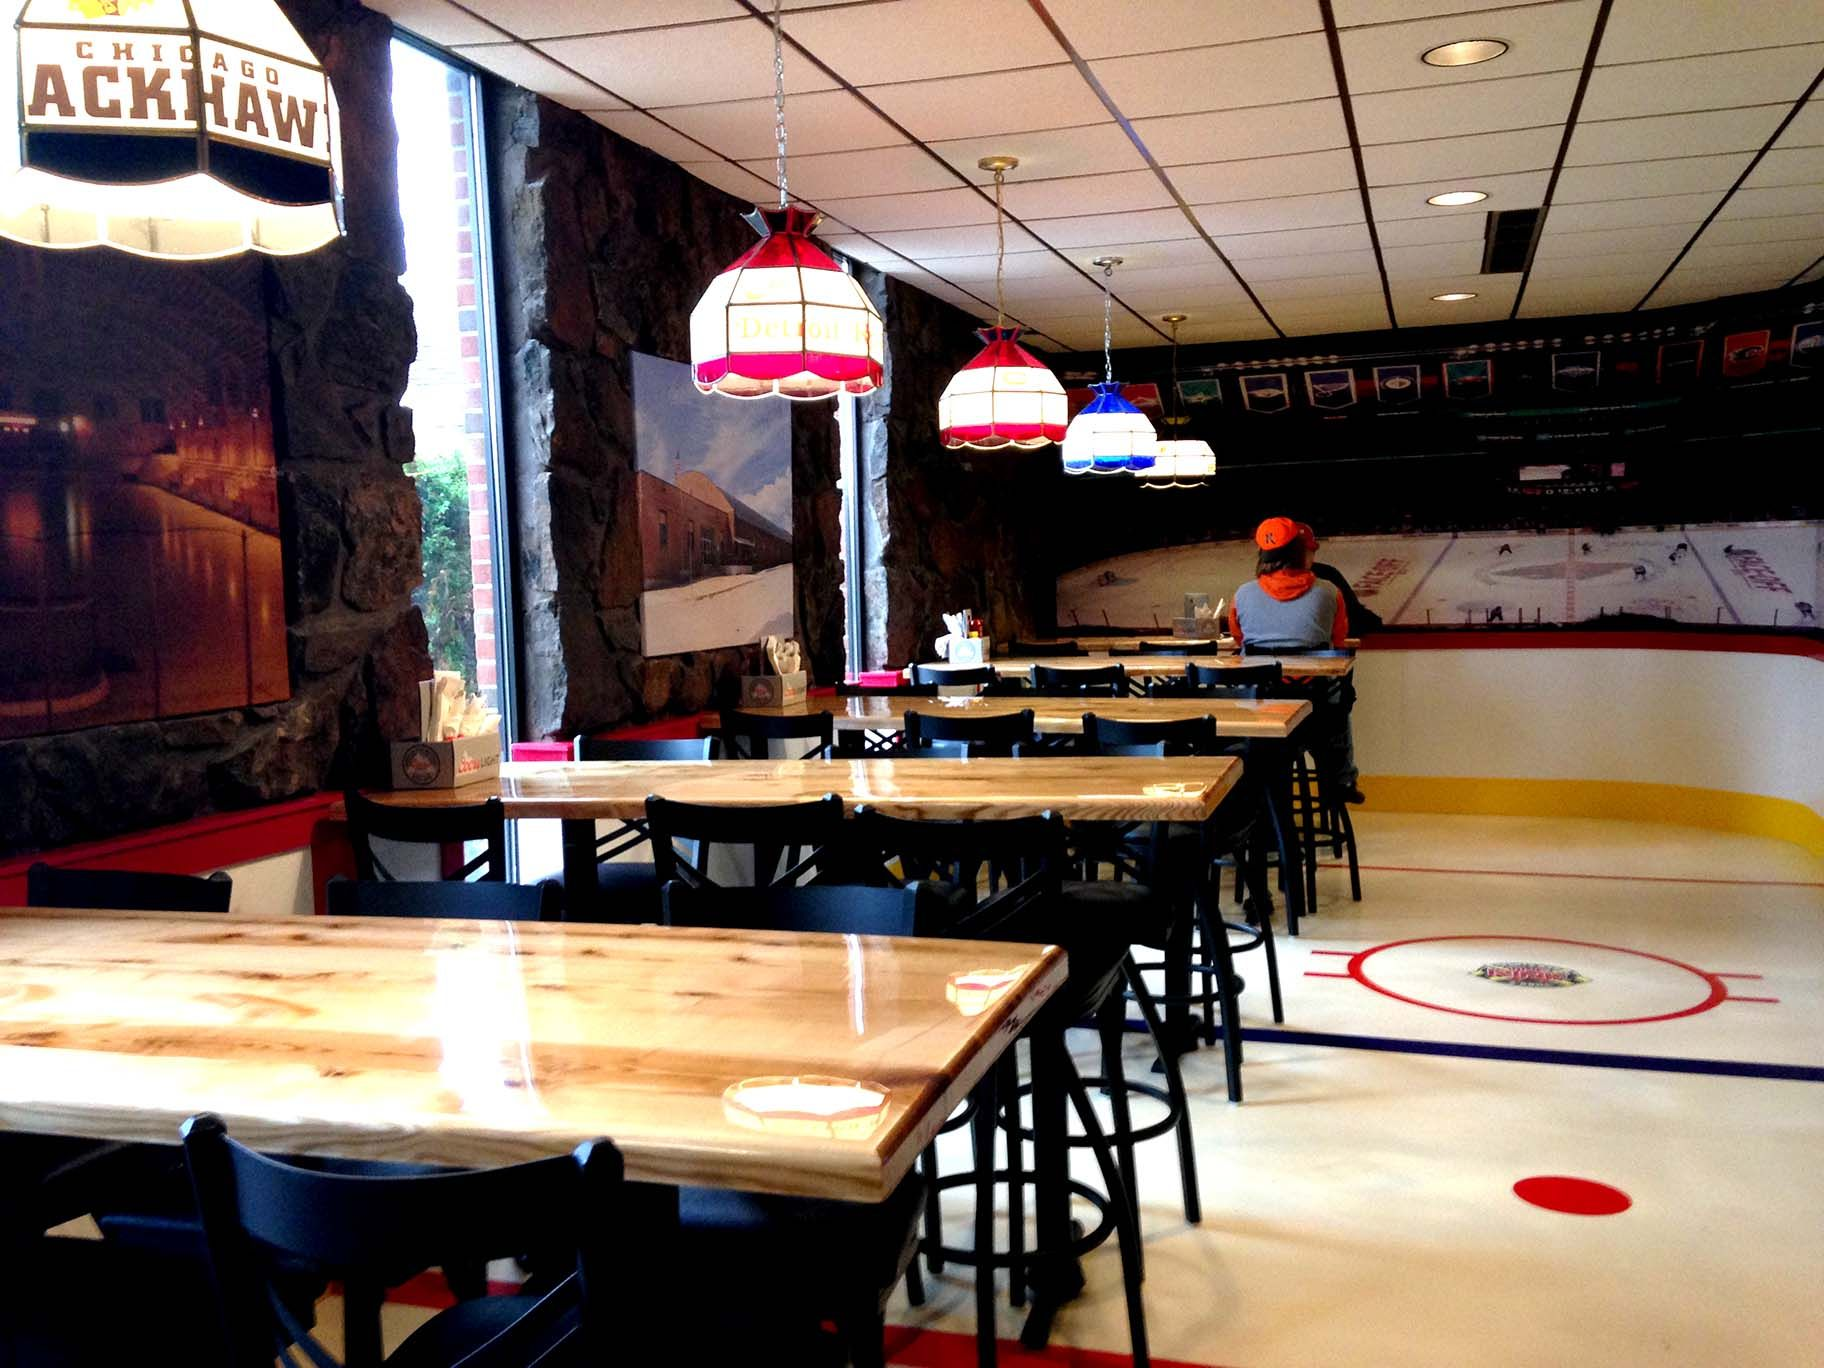 With A Floor Designed To Look Like A Sheet Of Ice In A Hockey Arena The Rink Sports Bar And Grill Features Hockey Themed A Floor Design Bar Areas Hockey Arena